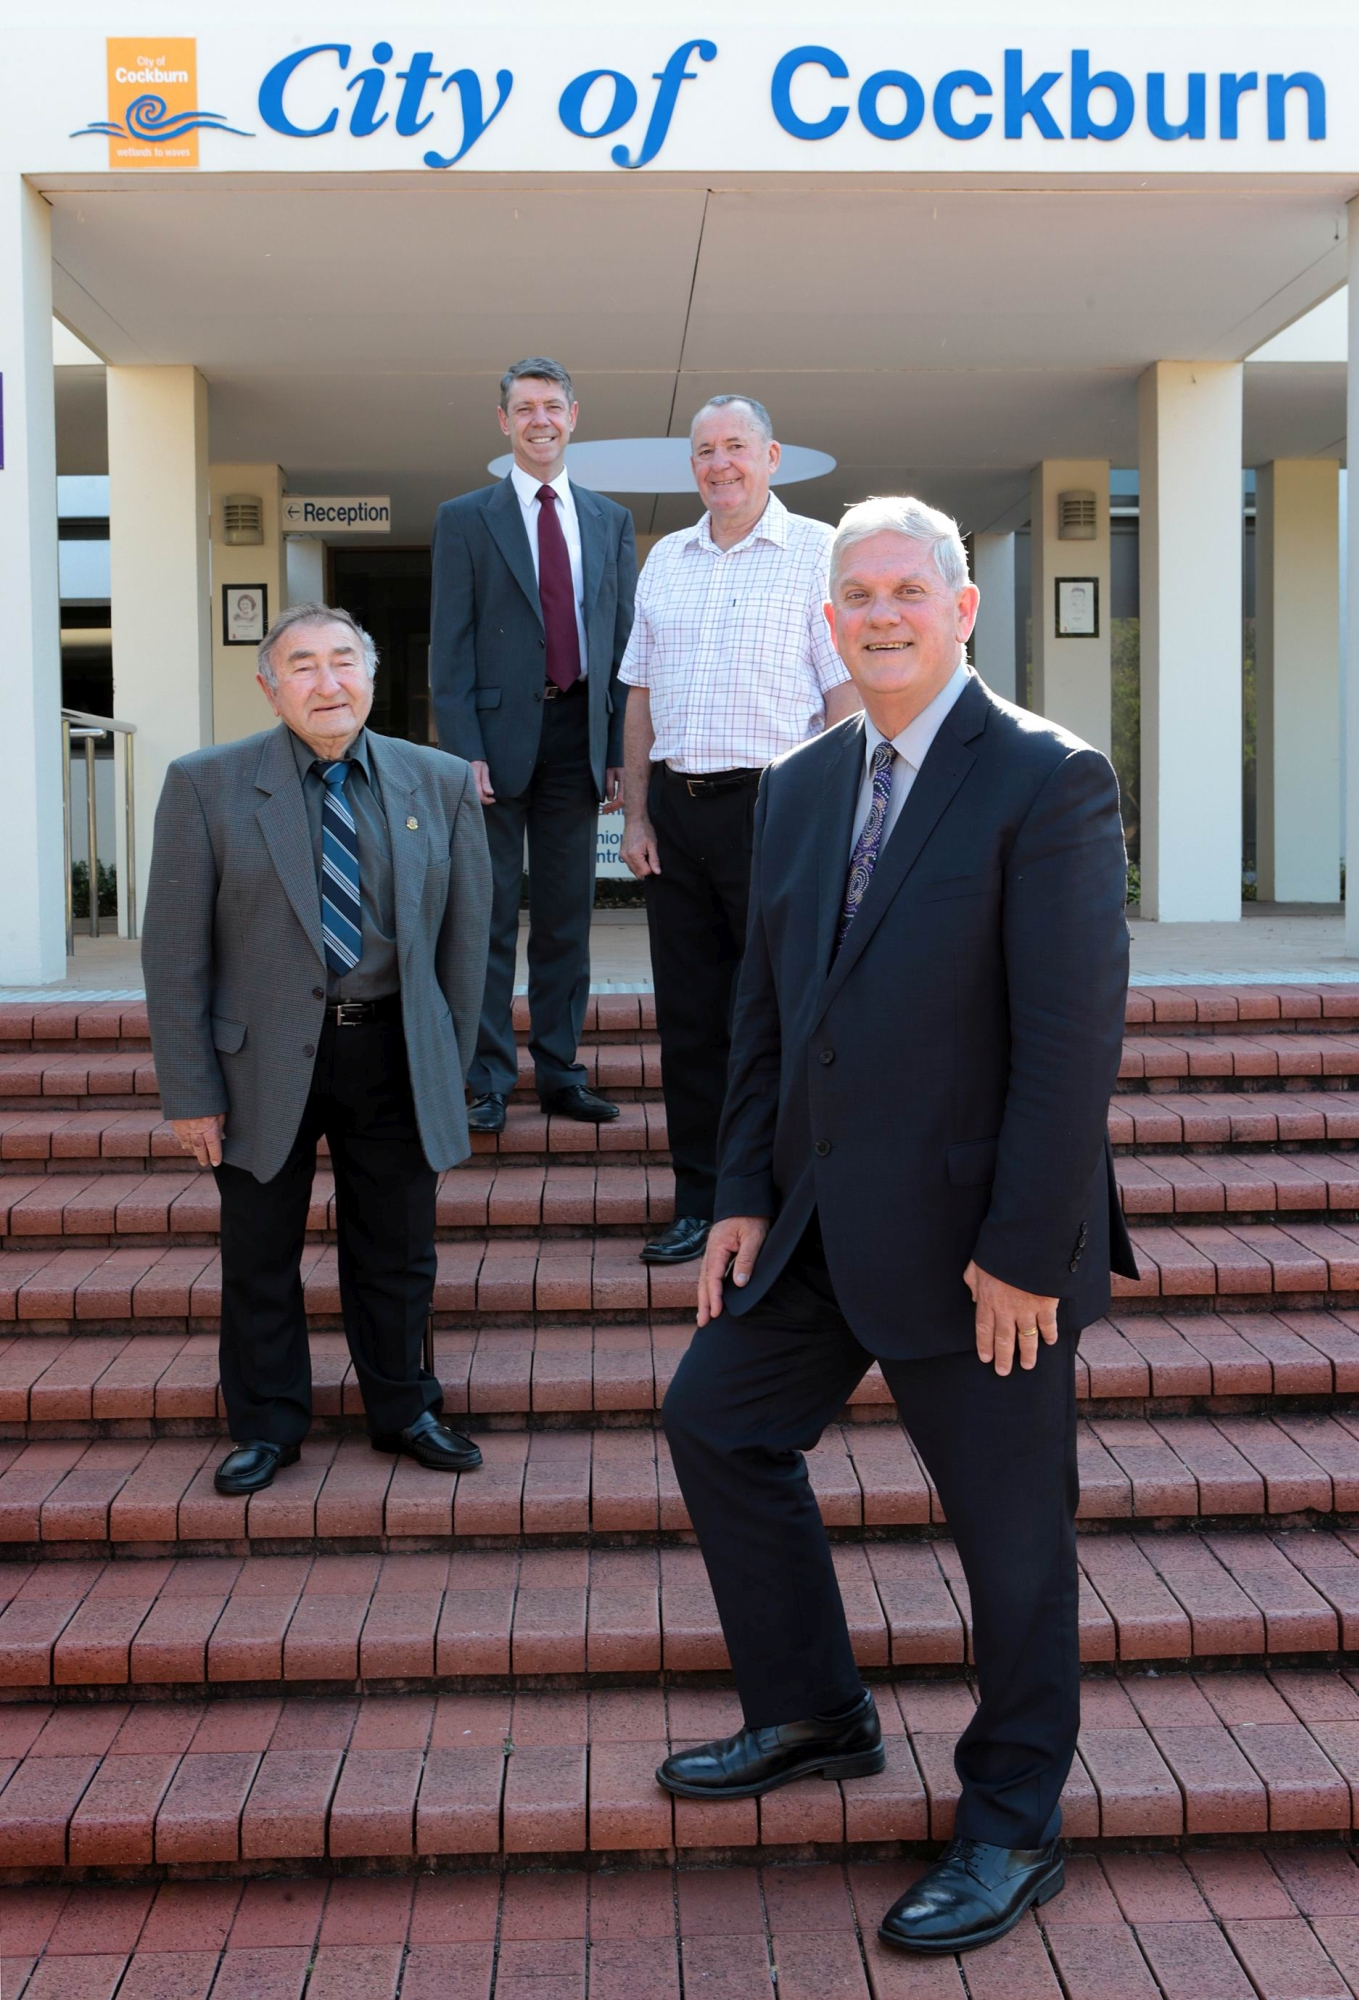 Former Shire clerk Tony Armarego, CEO Stephen Cain, former Shire Clerk Rod Brown and Mayor Logan Howlett. d427742